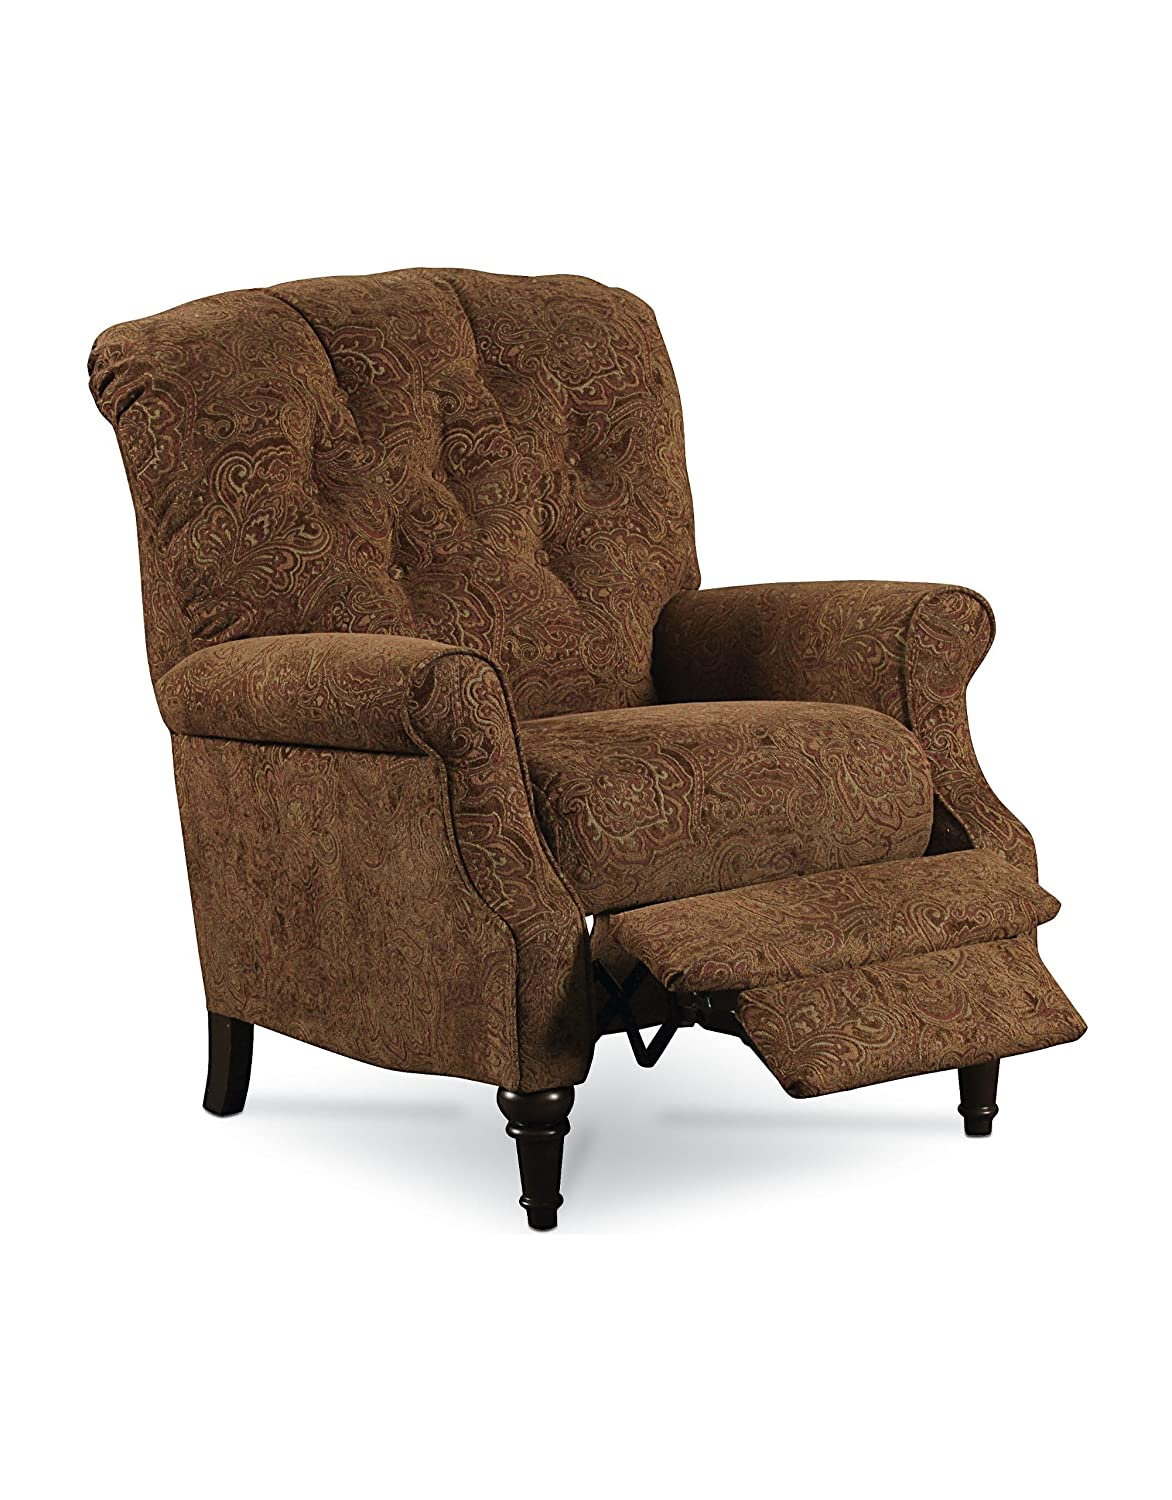 Amazon.com: Lane Furniture Belle 2550 1573 21 Hi Leg Recliner With Turned  Legs In A Warm Walnut Finish Button Tufted Detailing And Hide A Chaise:  Kitchen U0026 ...